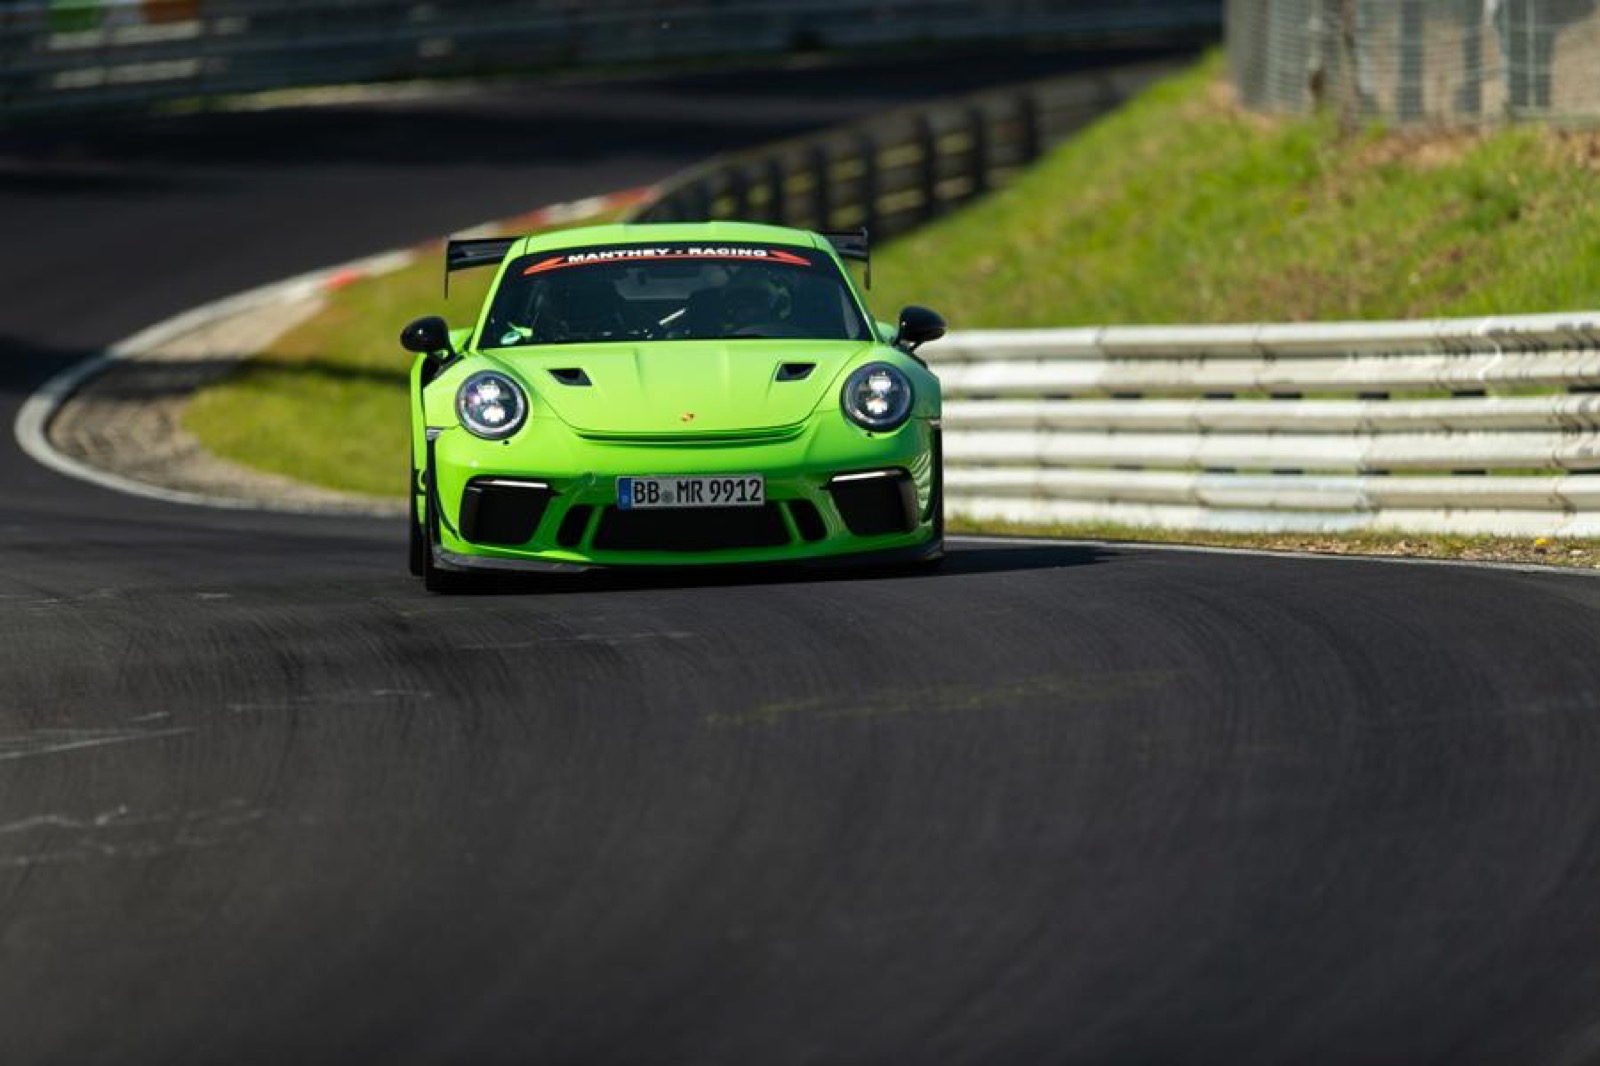 Porsche-911-GT3-RS-MR-by-Manthey-Racing-7